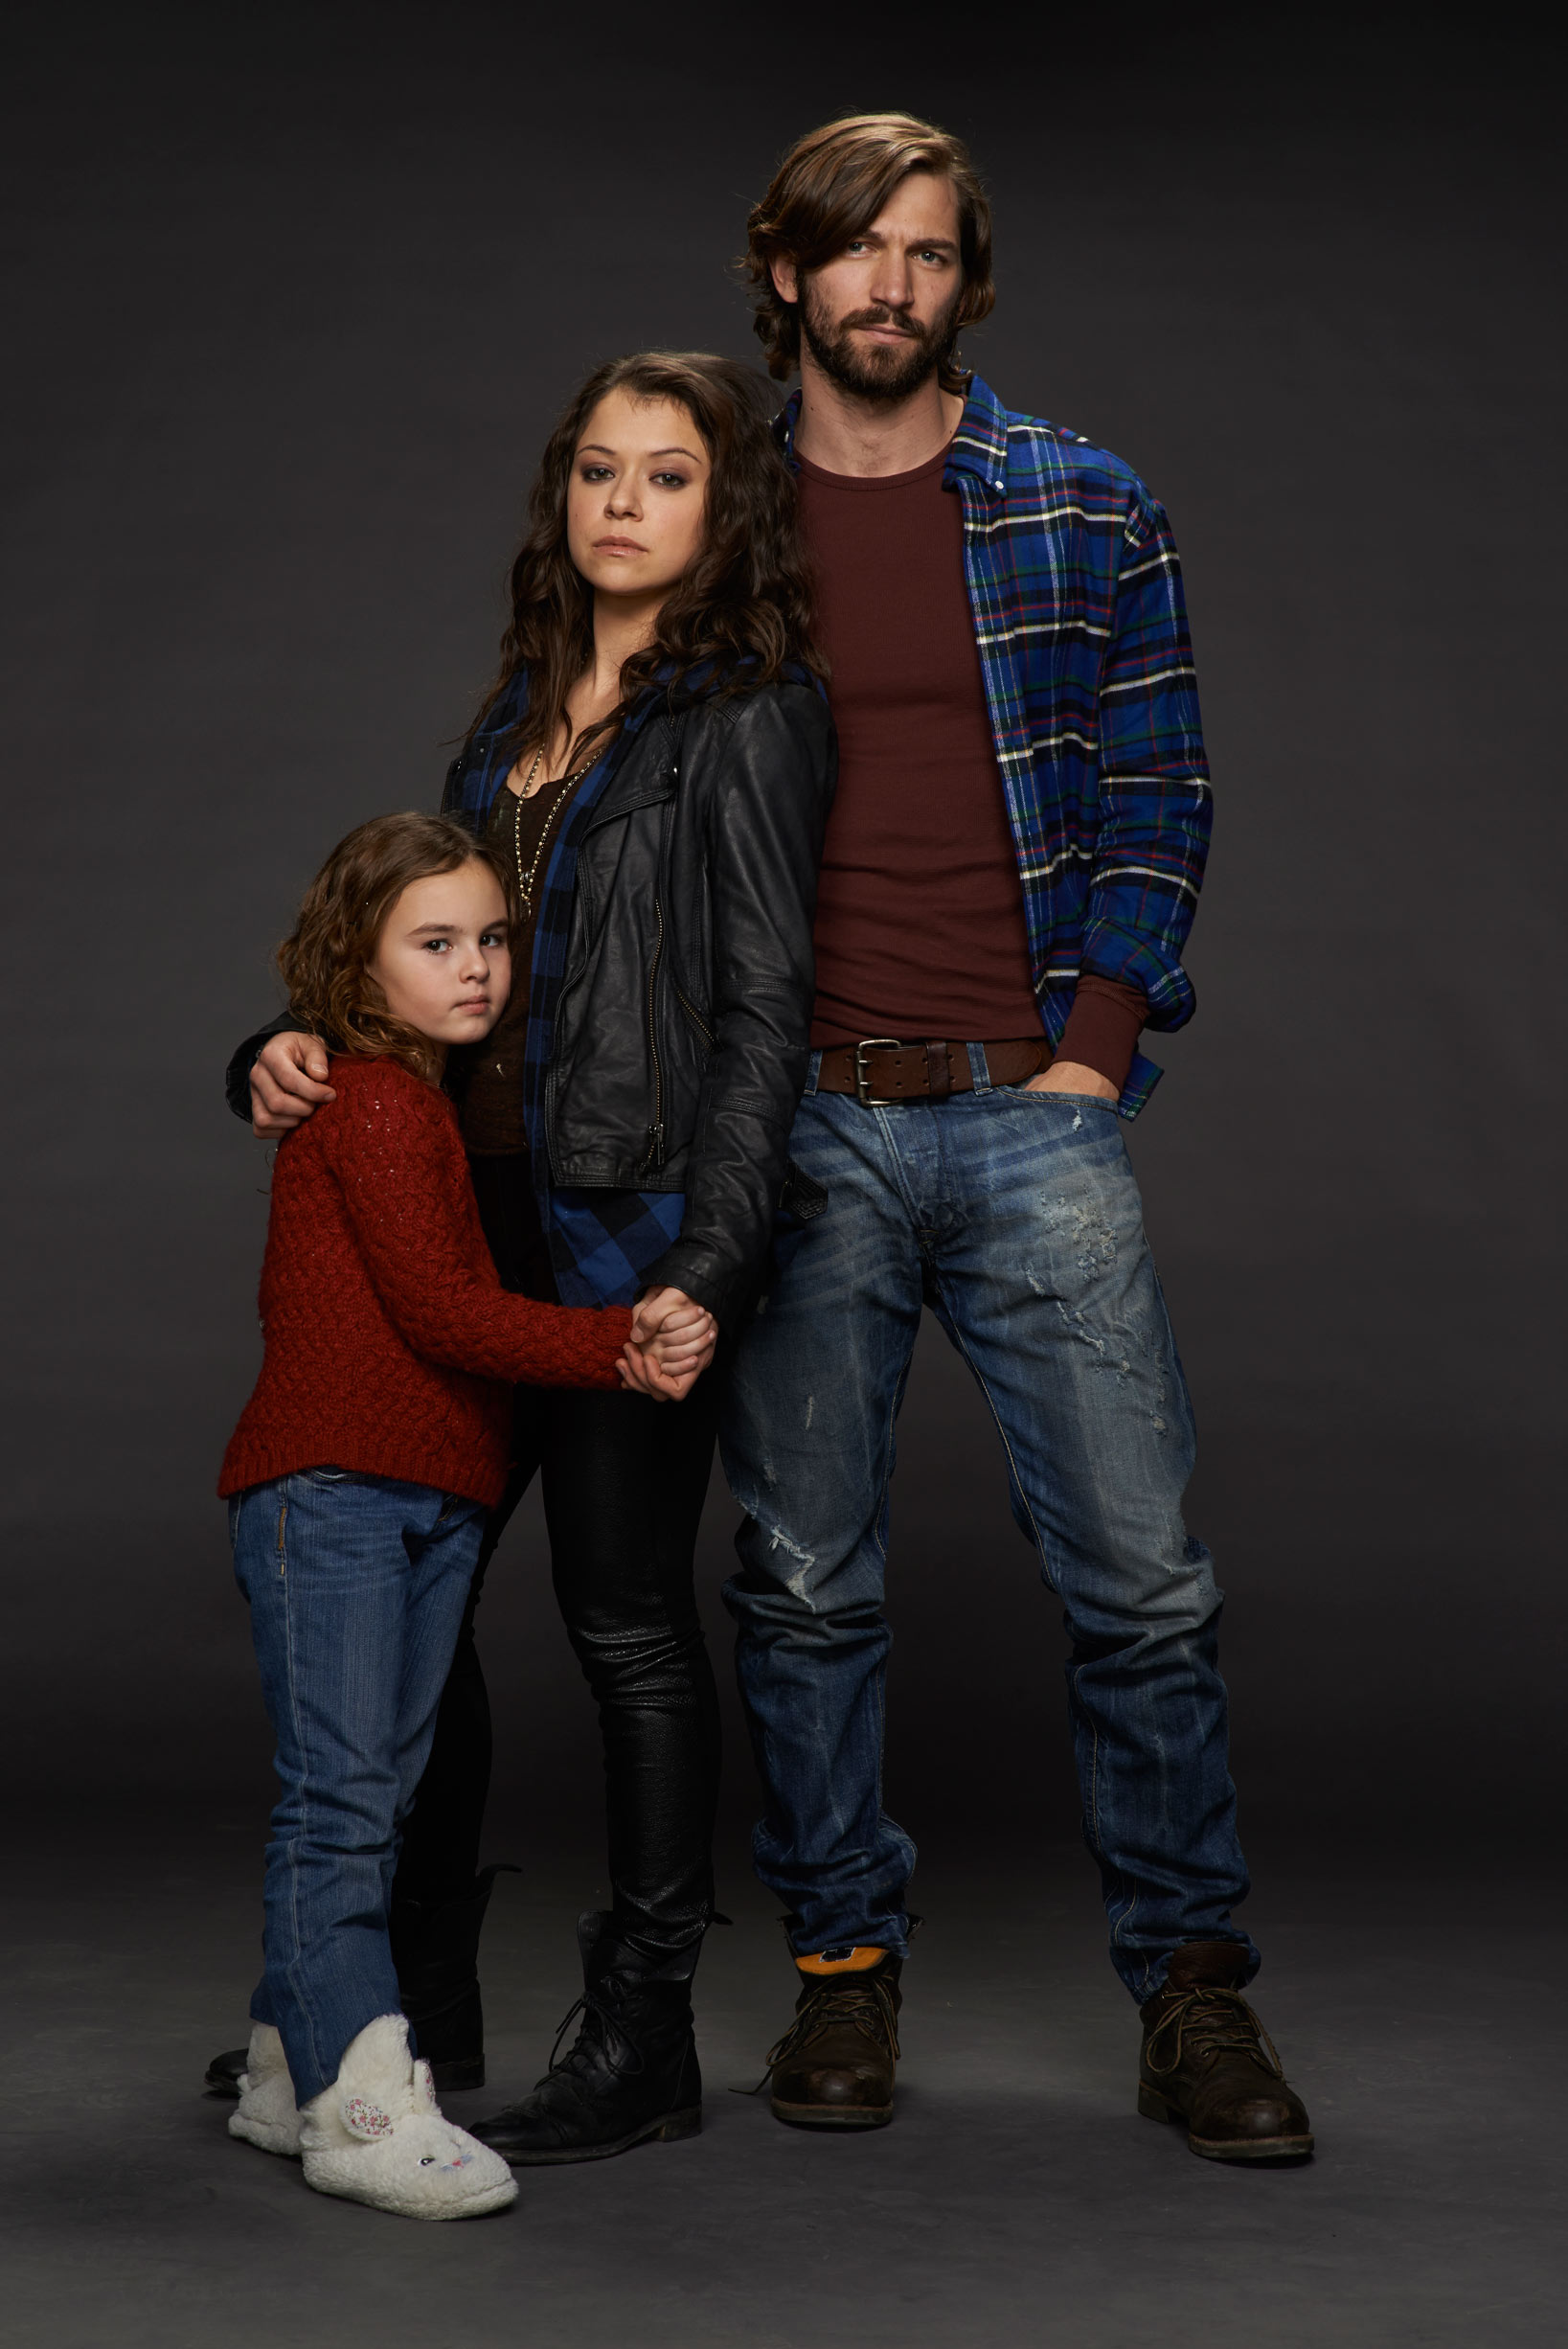 Kira, Sarah Manning and Cal Morrison Season 2 Promotional Picture